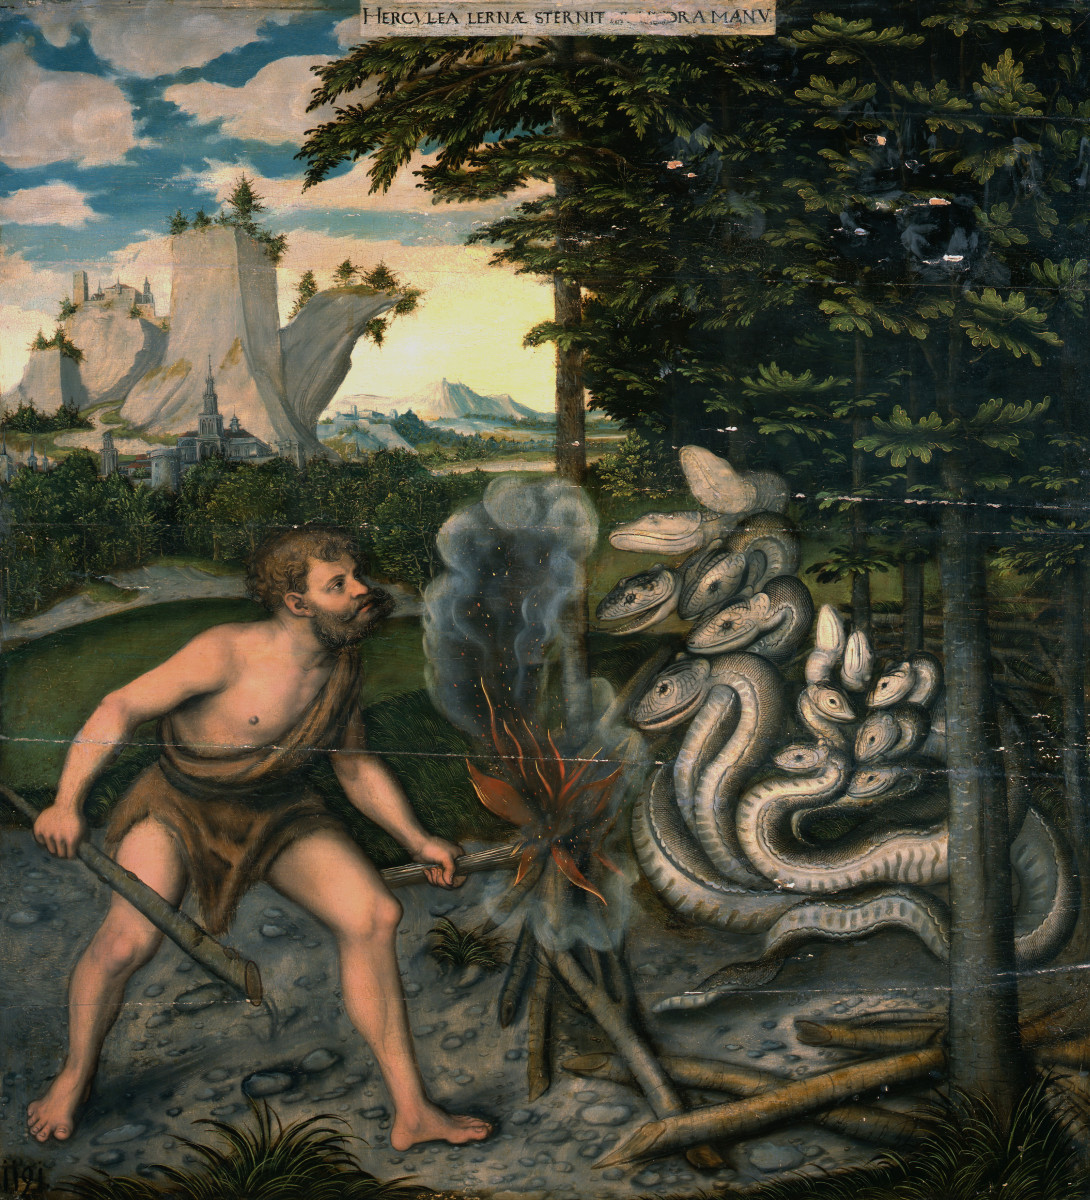 Hercules slays the dragon, Hydra, one head at a time.